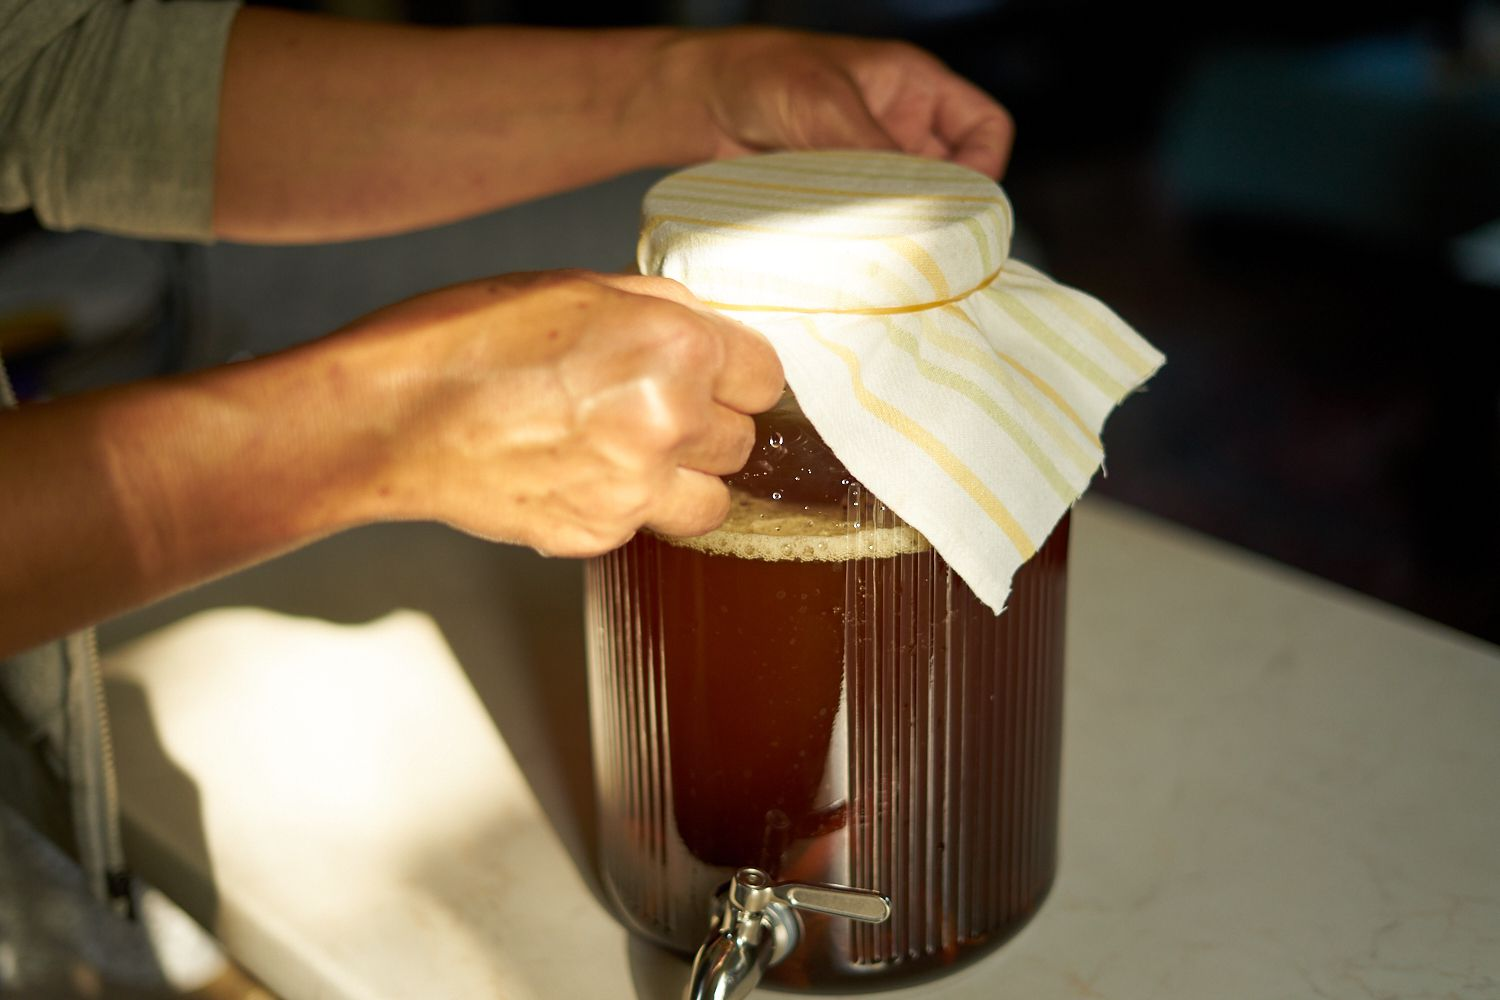 hands put cheesecloth covering, secured with rubber band, on large glass dispenser for kombucha fermentation